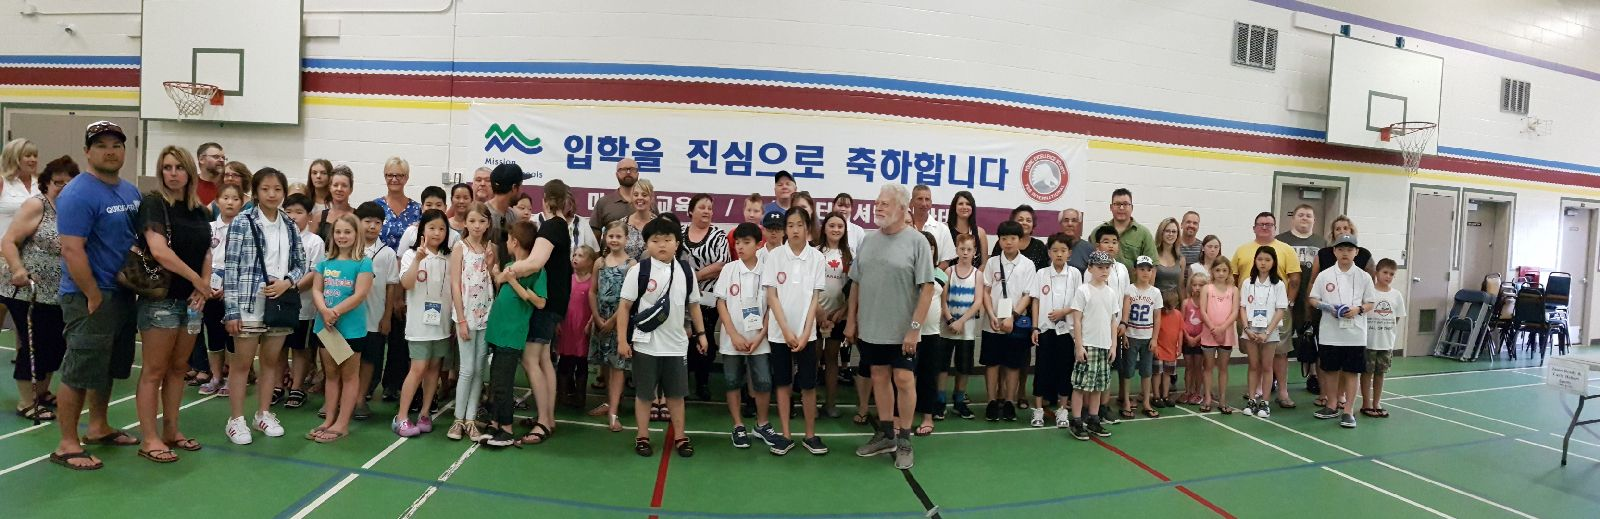 Y.E.S. English Academy – Korean Student Arrivals